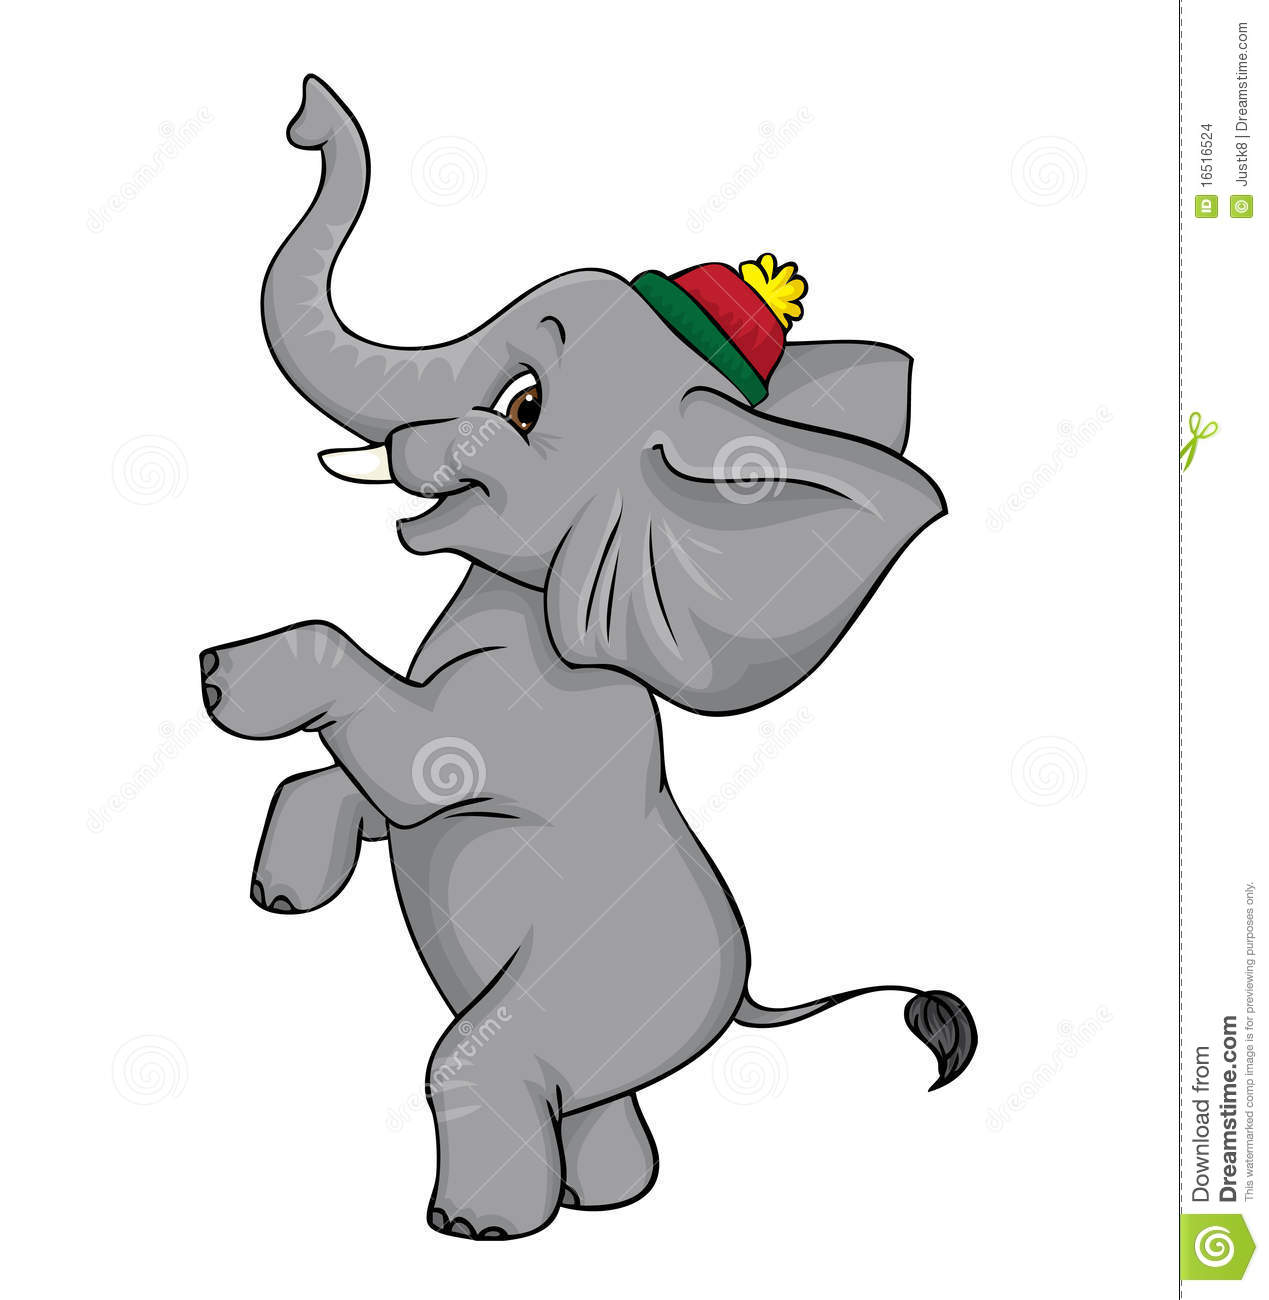 Circus Elephant Clipart - Clipart Suggest